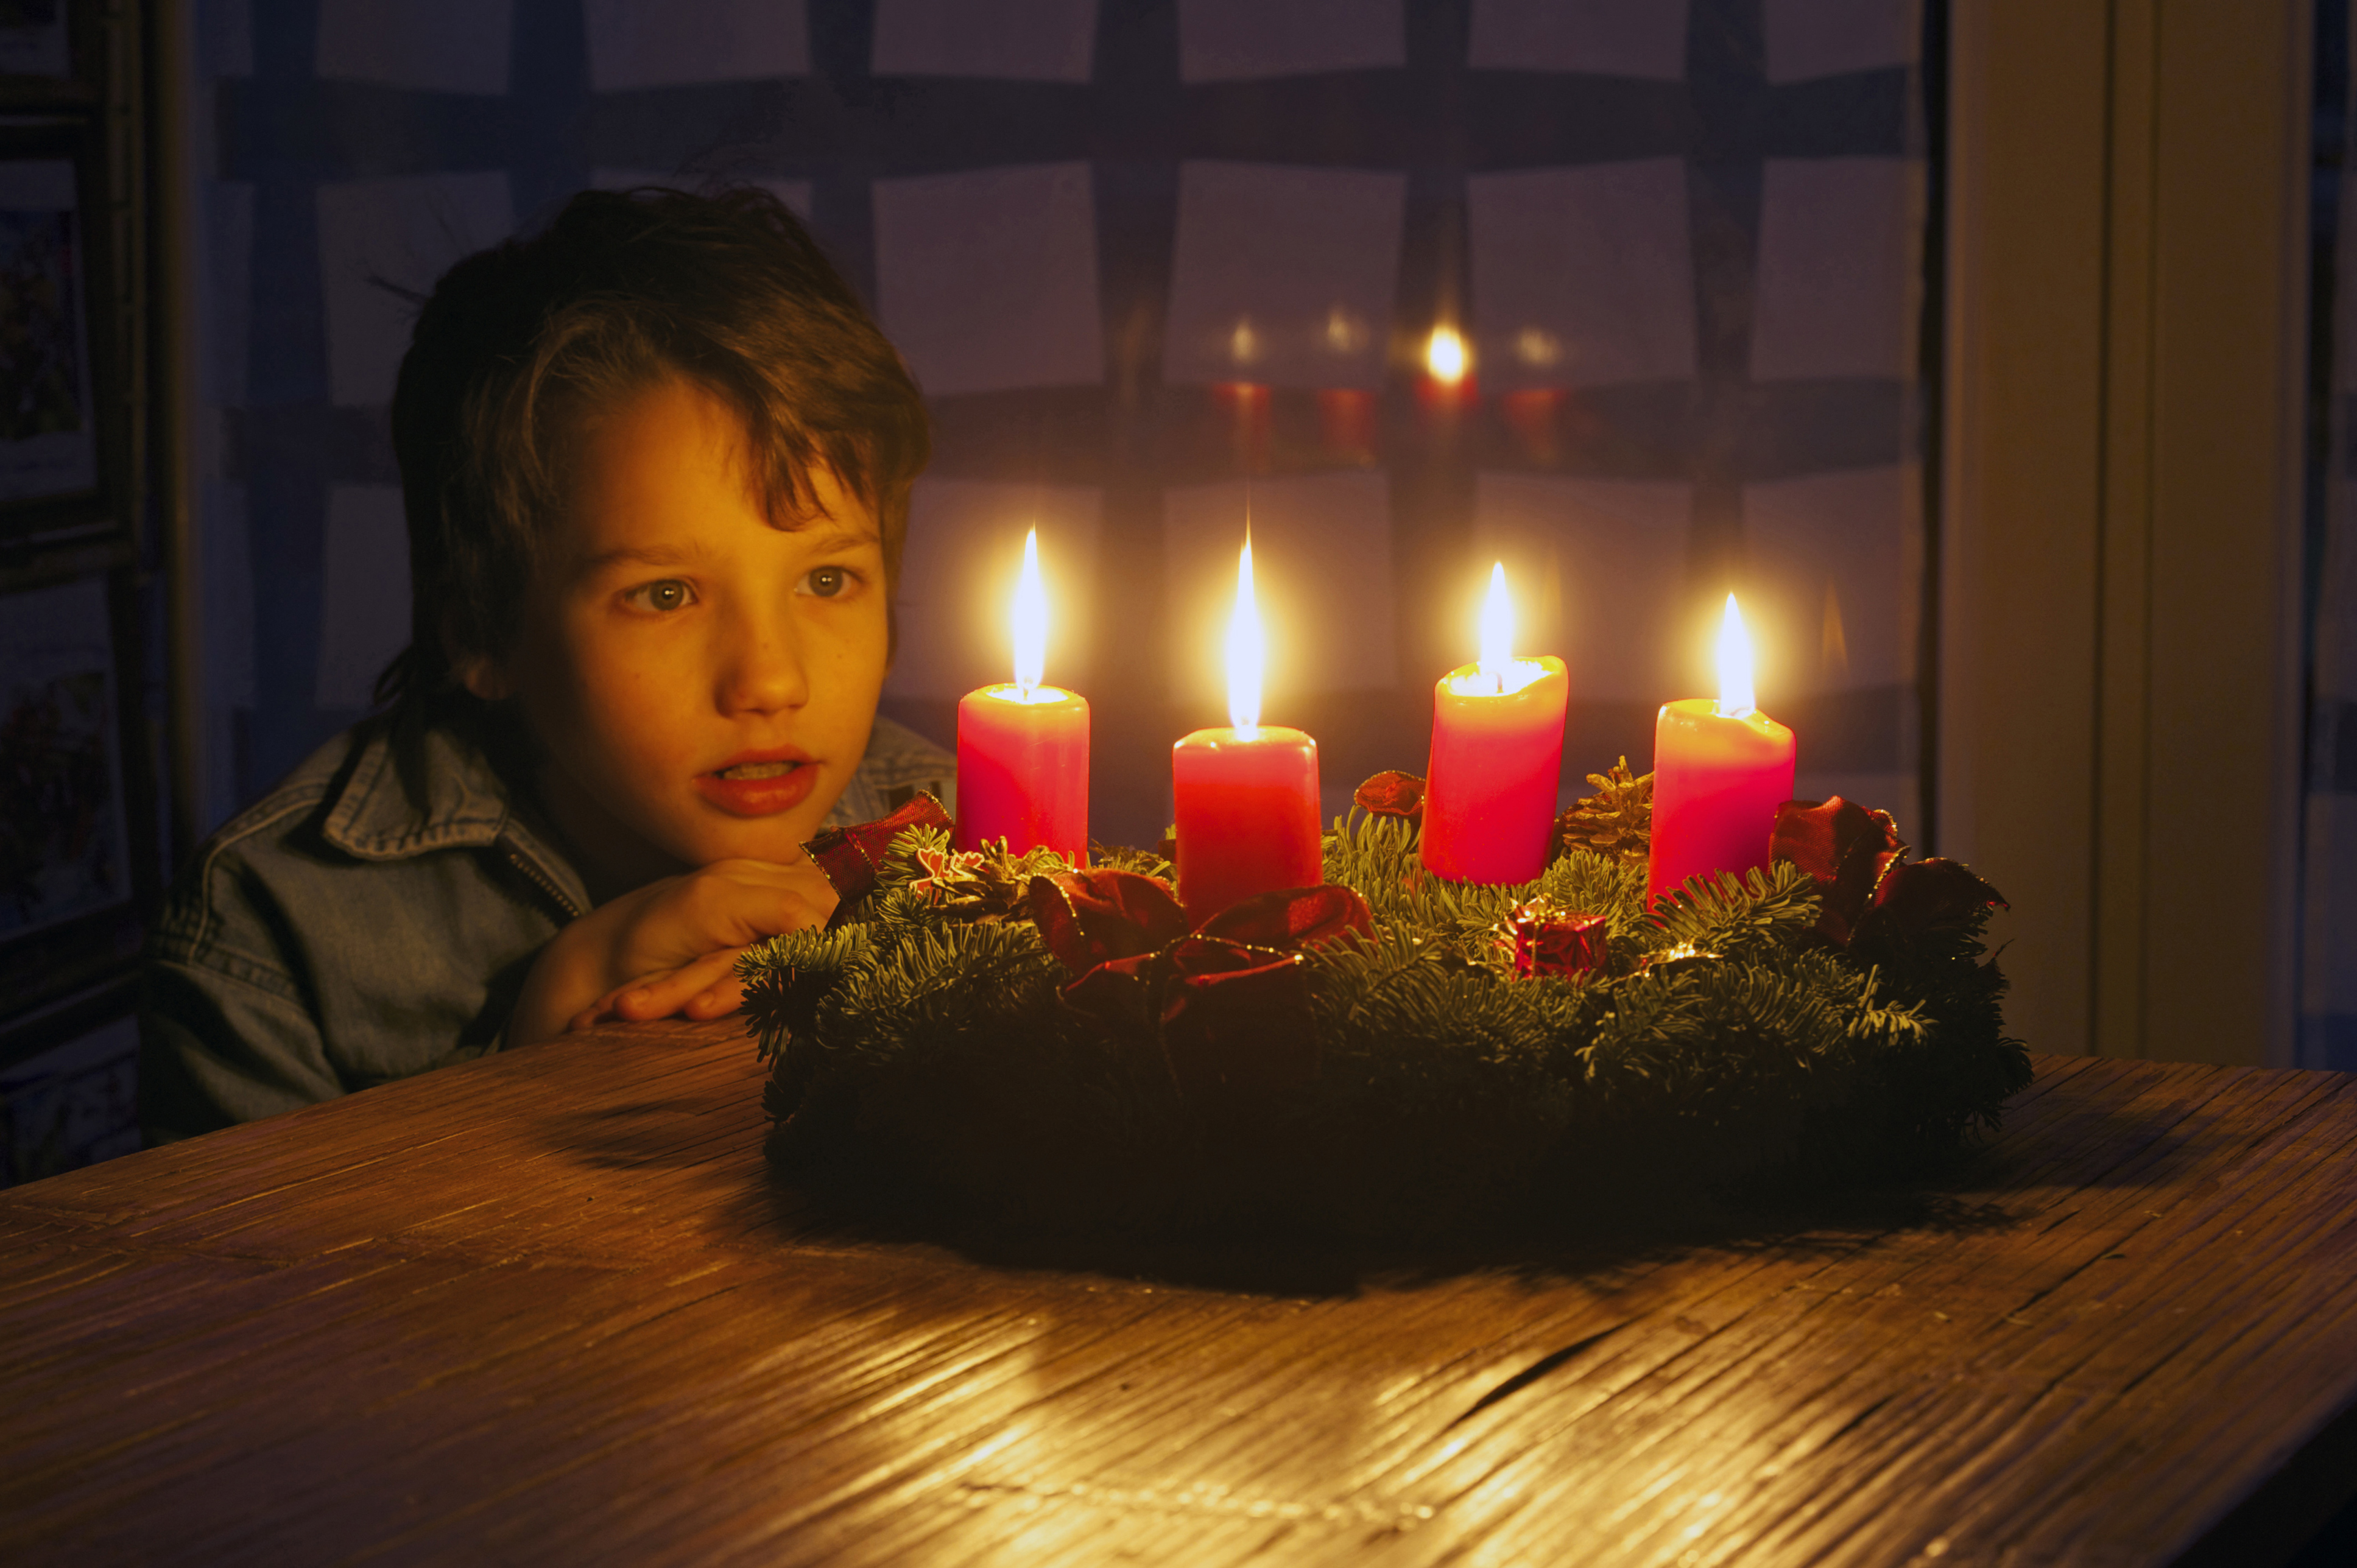 Divination in the New Year's Eve